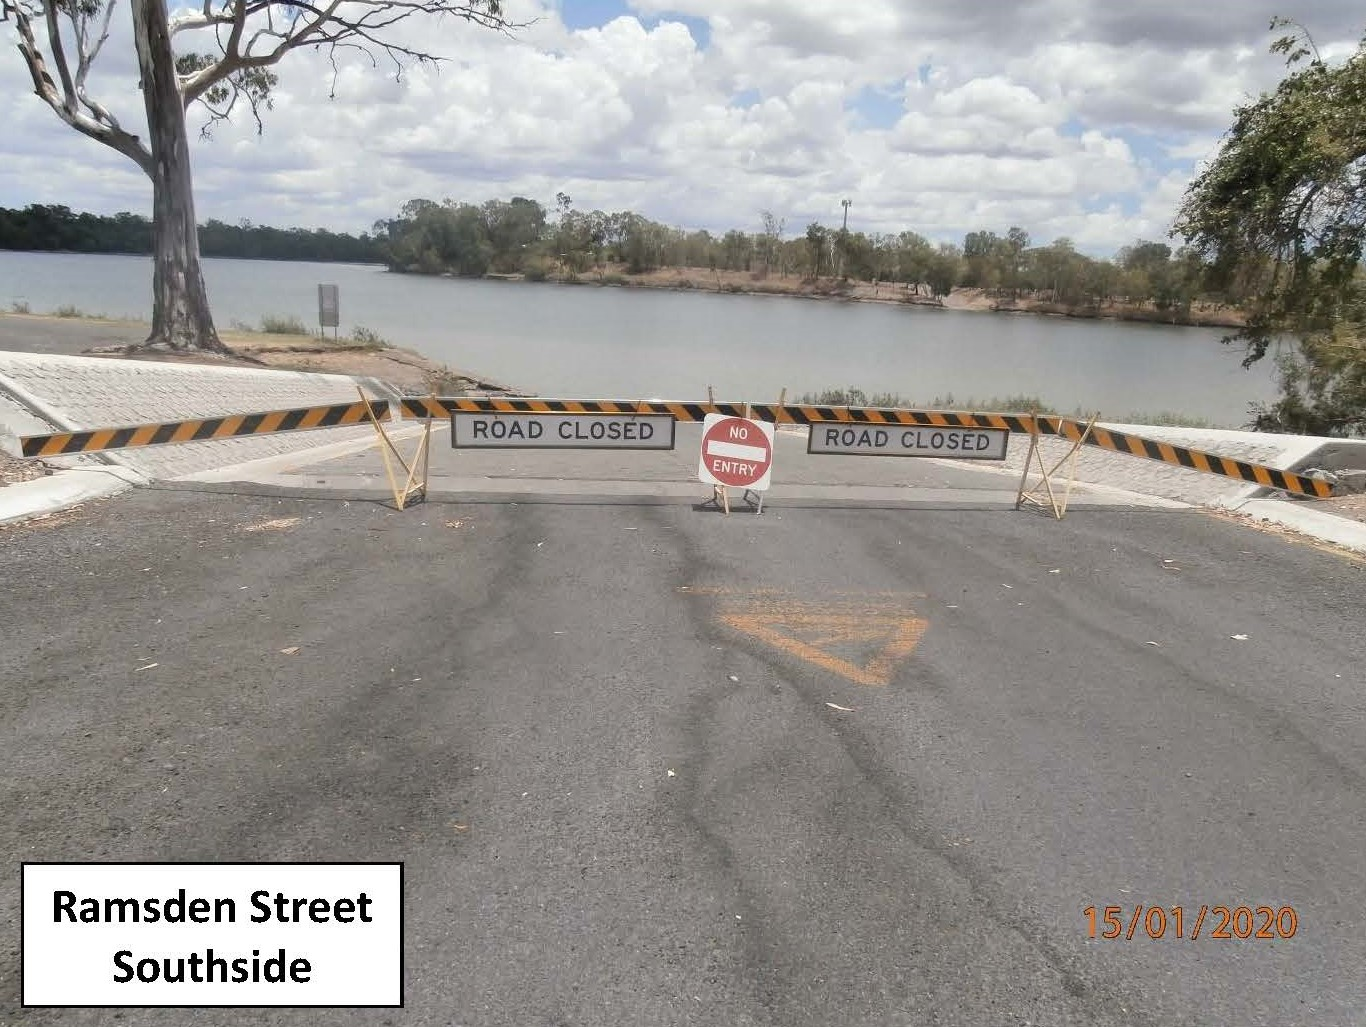 Boat Ramps 15 January 2020 - Southside